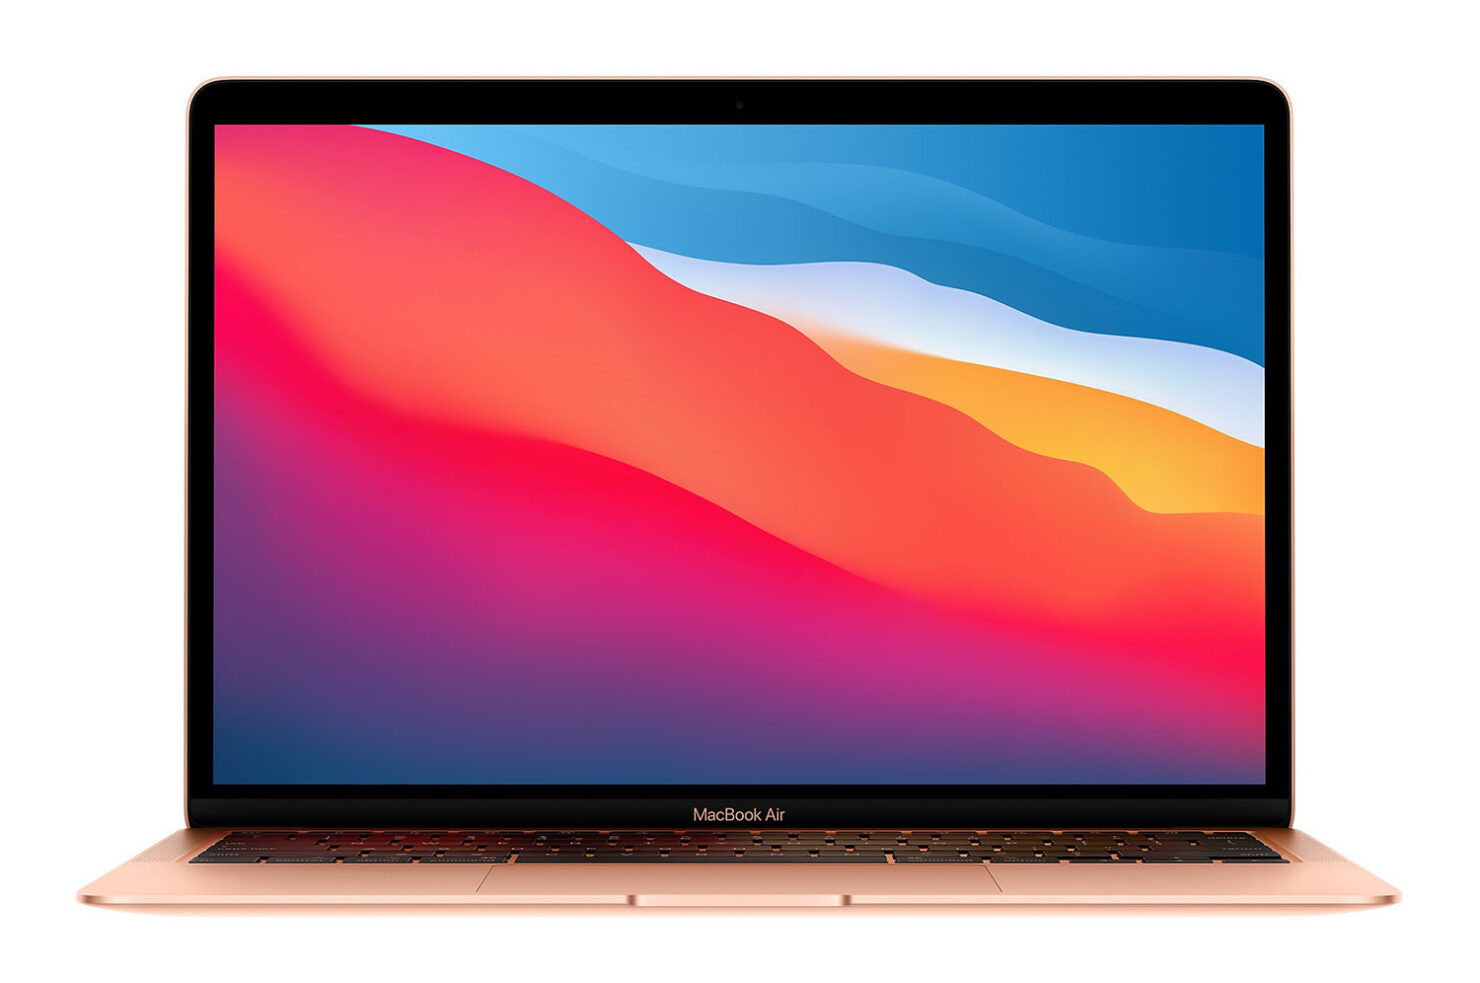 Prime Day 2021 Brings the M1 MacBook Air Price Down by up to $150